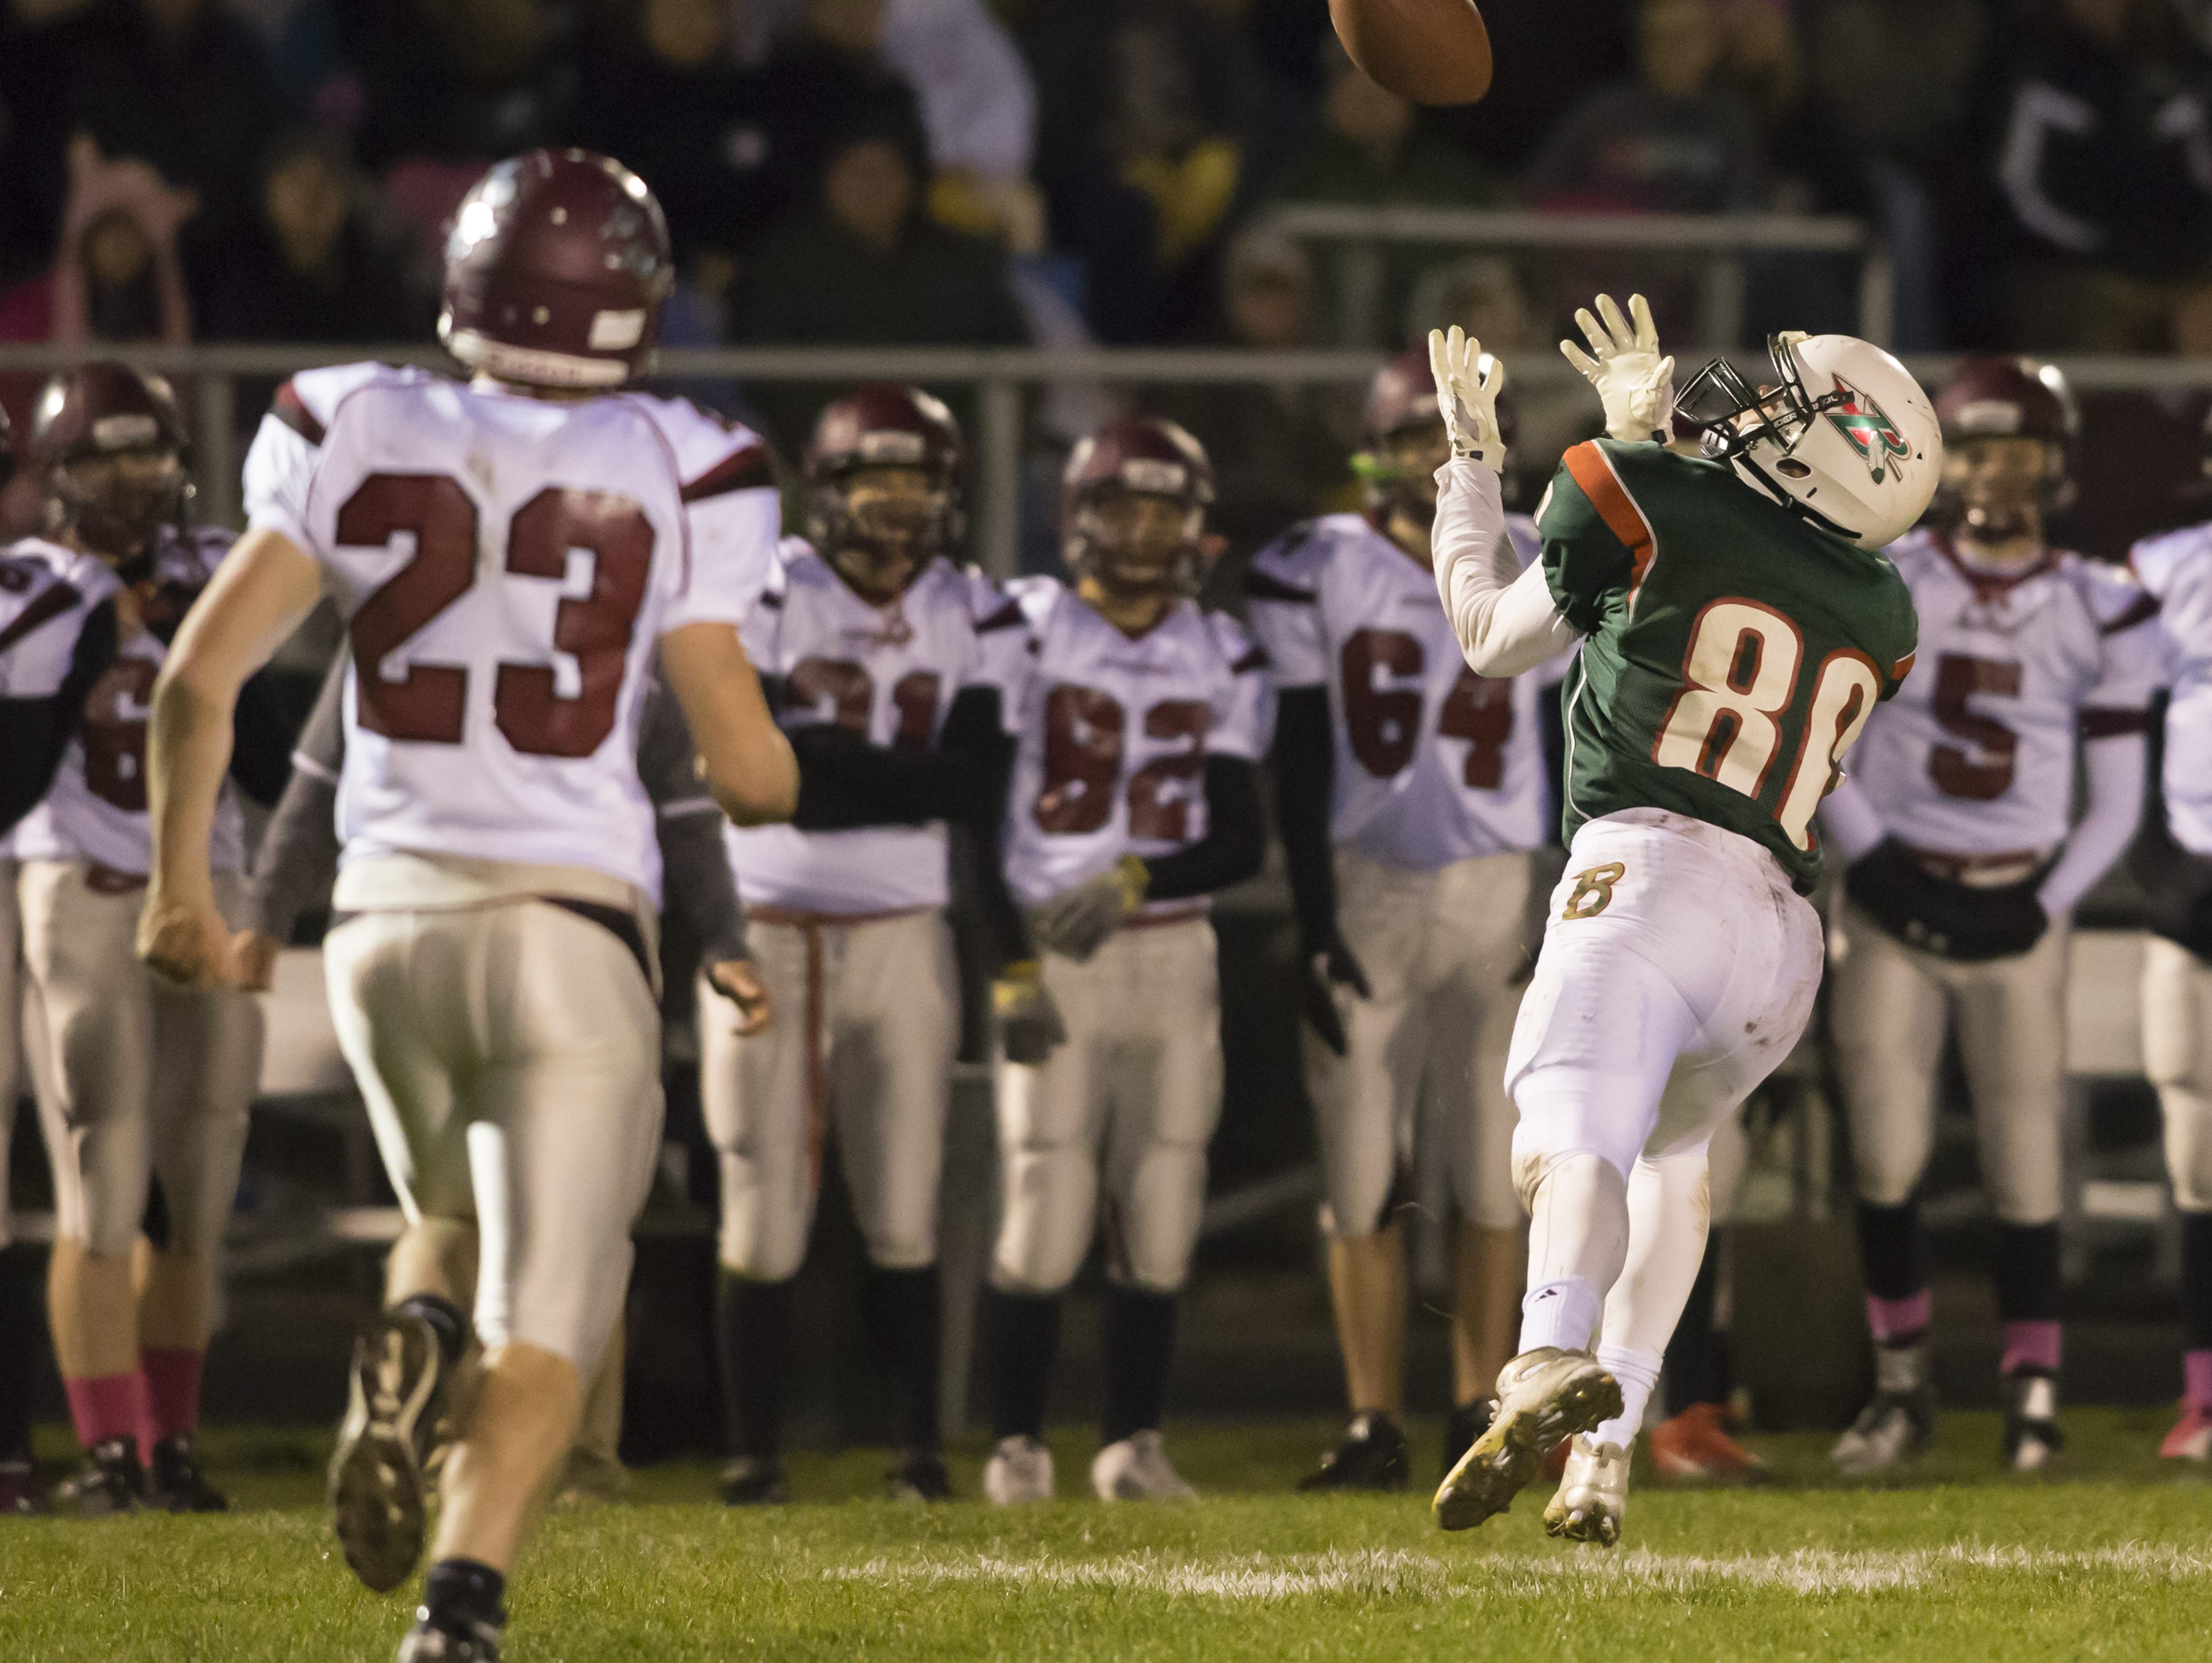 Berlin's Lucas Gravunder was named the Receiver of the Year in the East Central Conference.